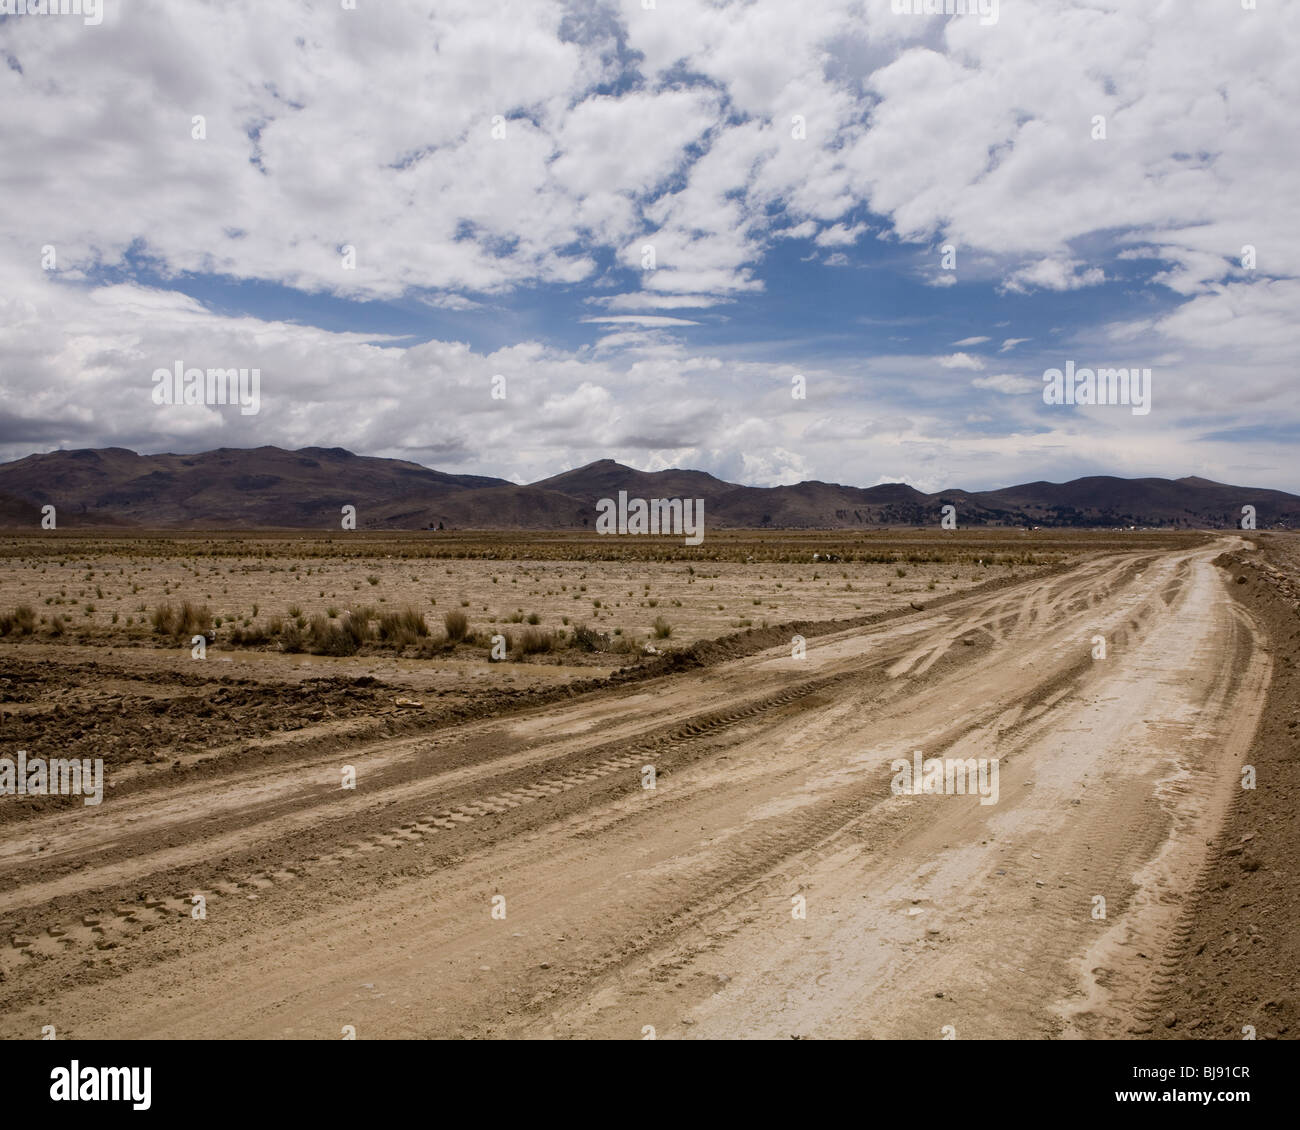 Dry and dusty dirt track high on the bolivian altiplano - Stock Image